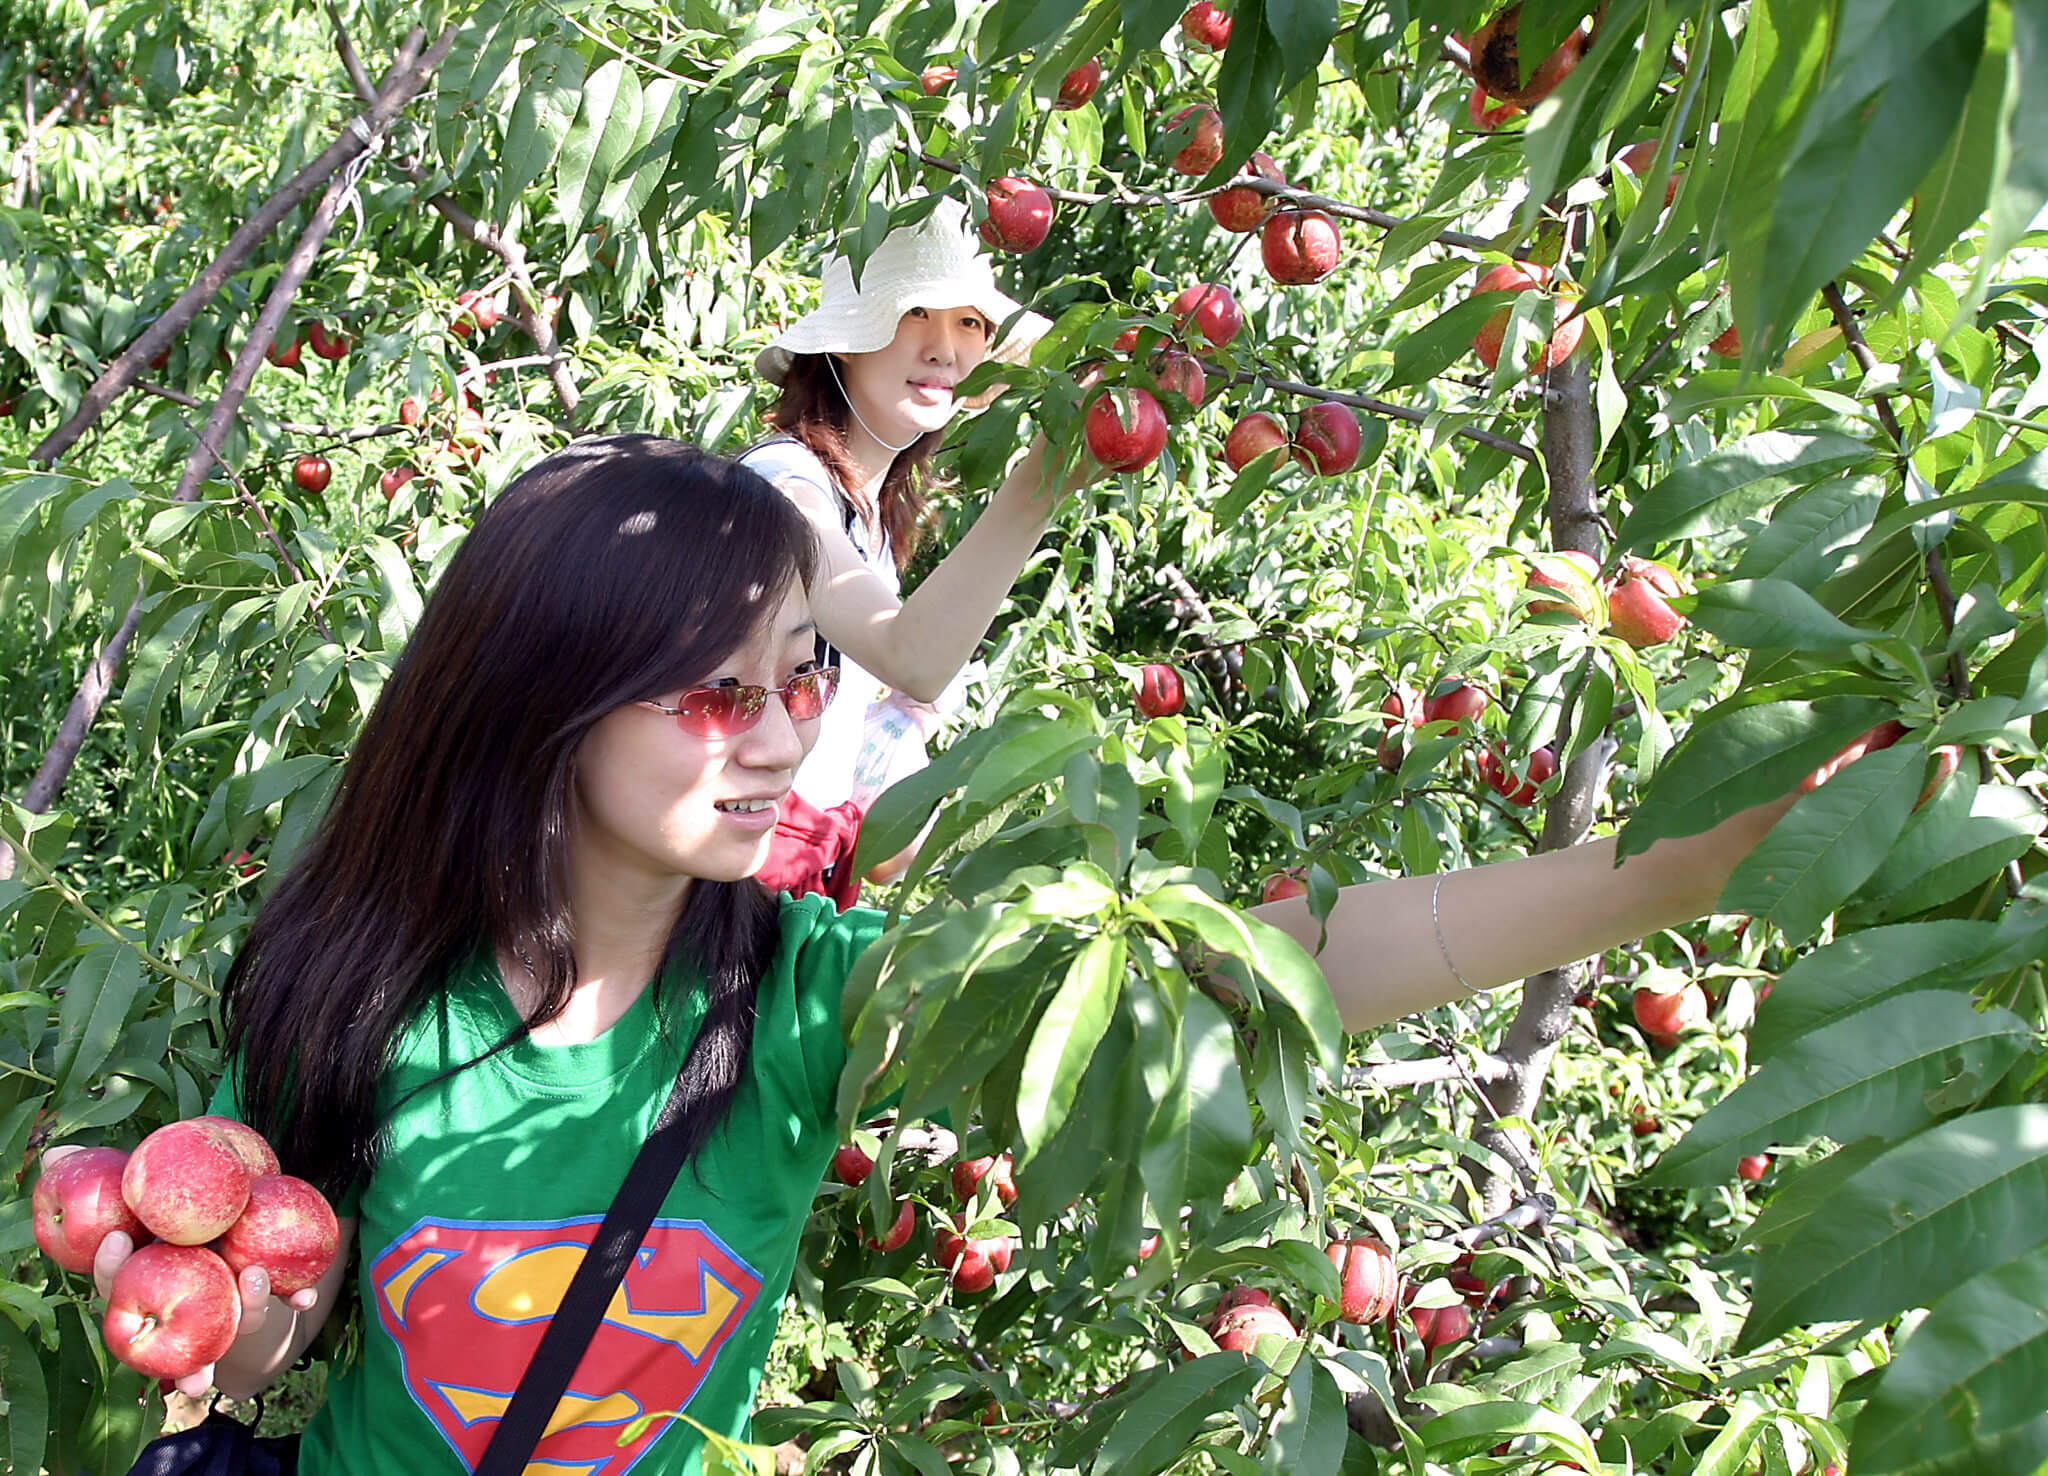 U of Auckland tells international PhD students in New Zealand to 'go fruit picking'